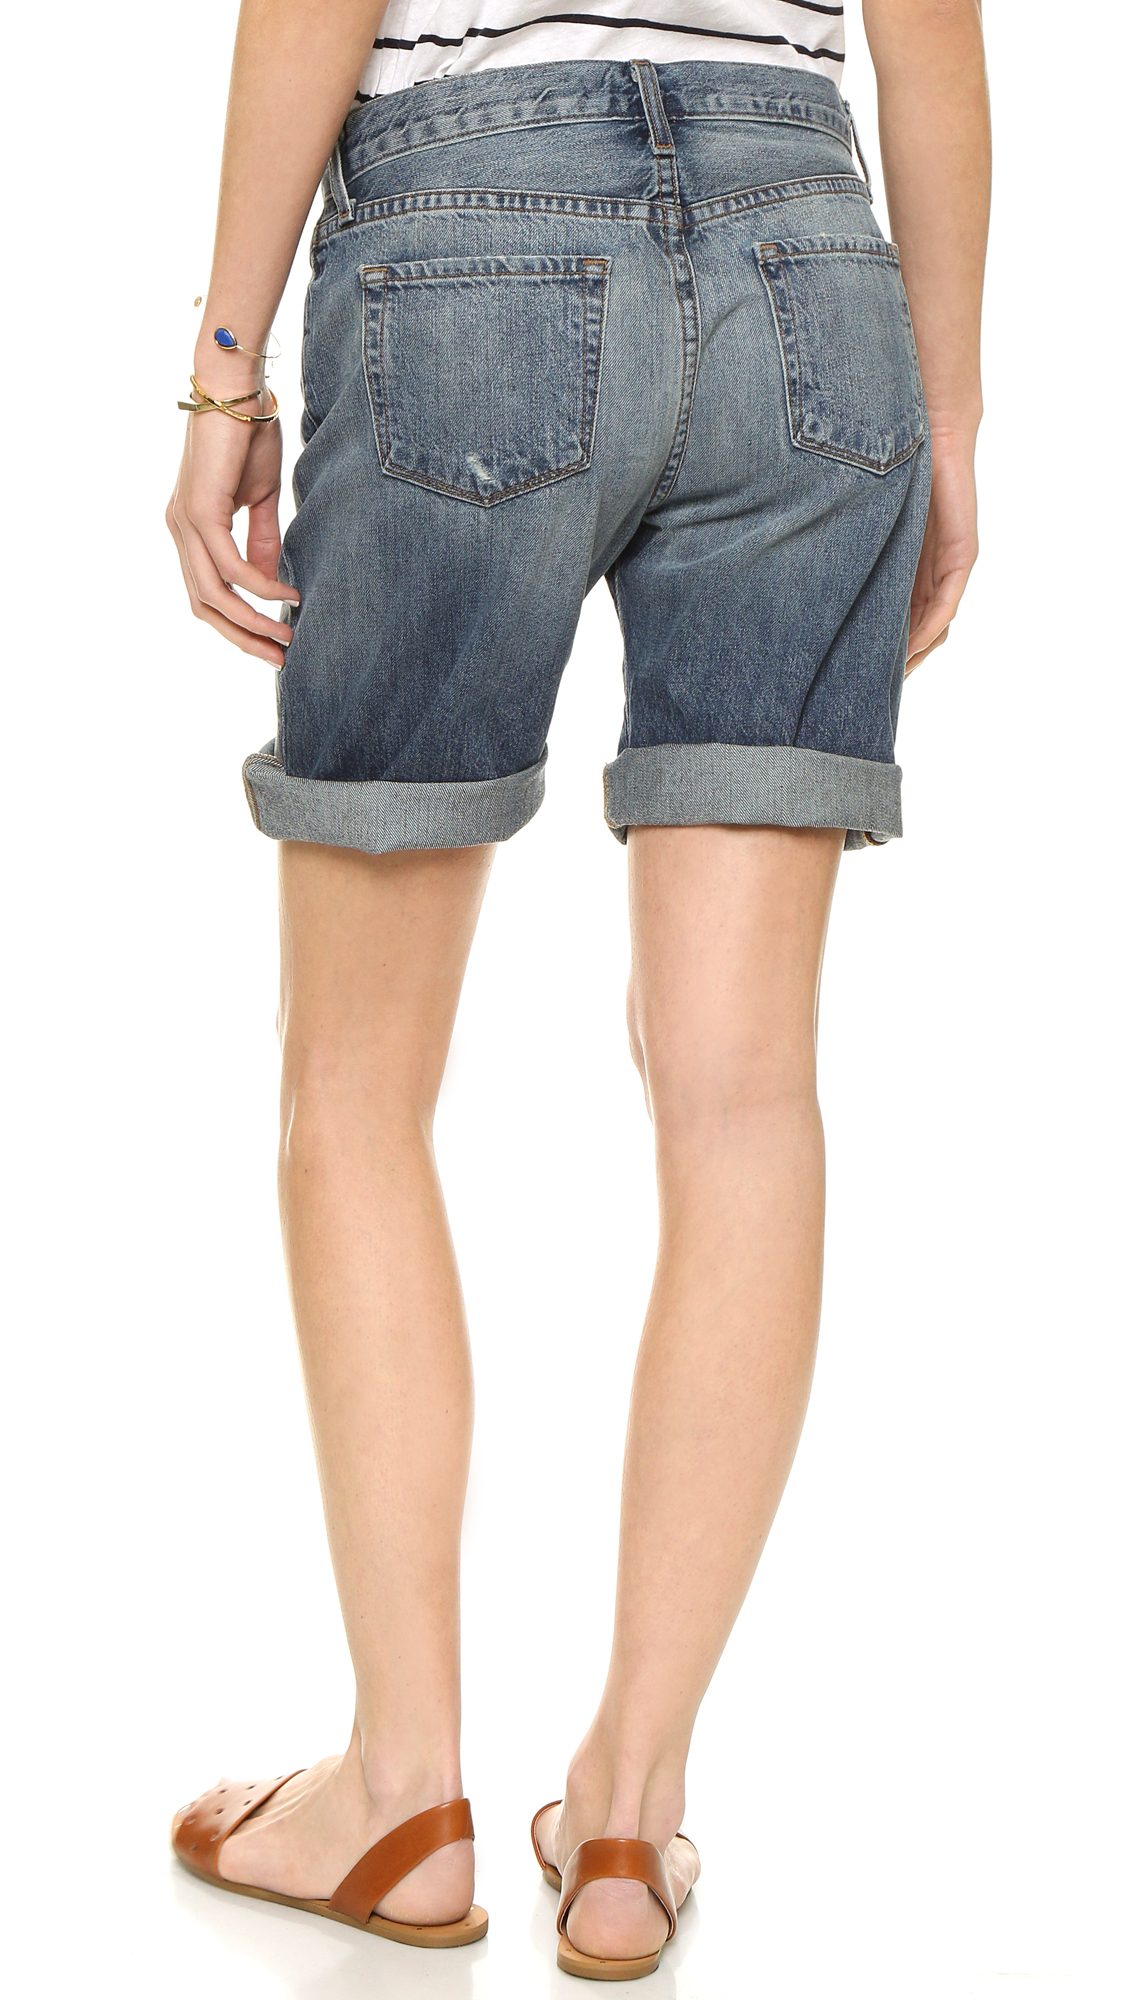 42d02fcc29 Lyst - J Brand Dani Mid Rise Relaxed Bermuda Shorts - Dispatch in Blue